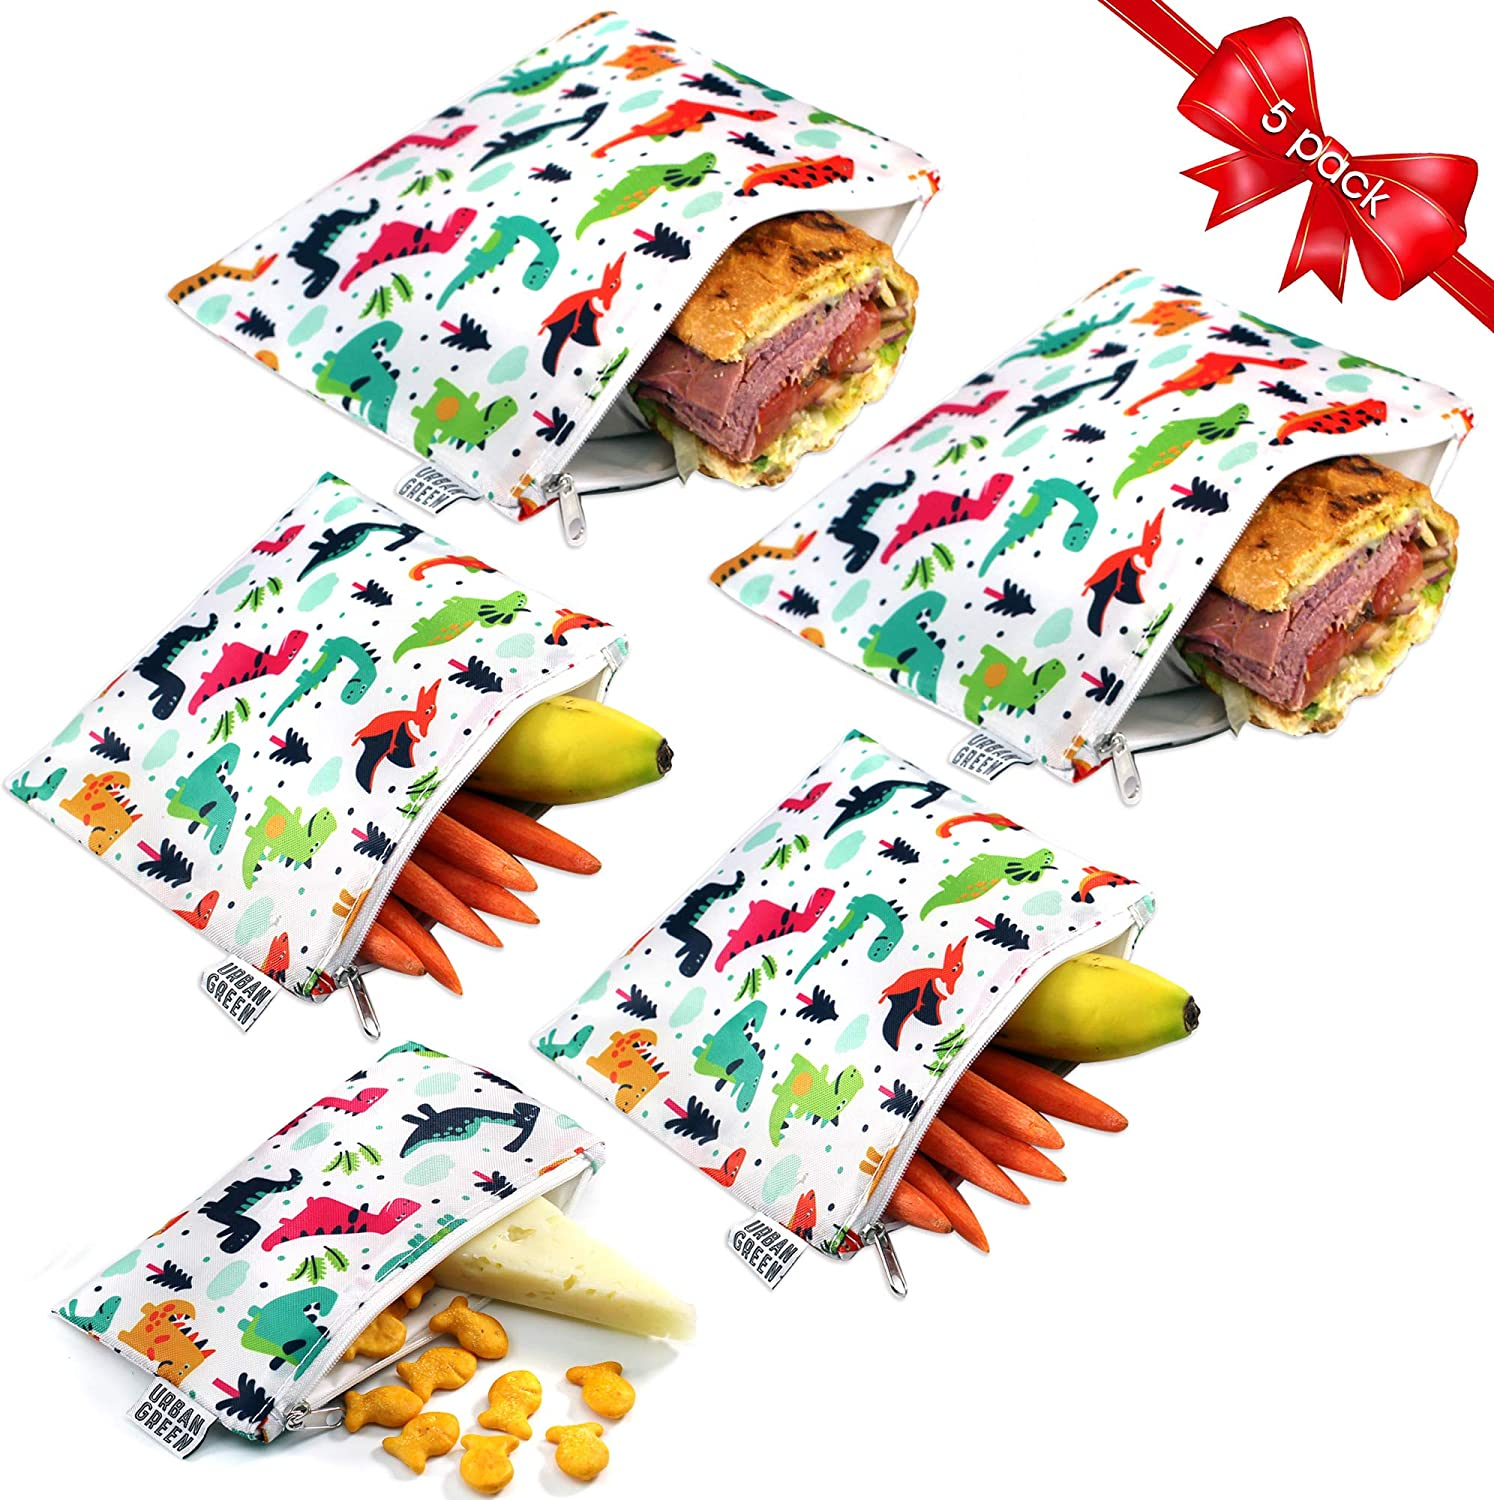 Reusable Sandwich Bags Snack Bags by Urban Green, Lunch Bags for kids, 5 pack, Food Storage Bags, Toiletry Makeup Bags, Food Wraps, Cable Travel Organizer, Accessory Bags (Colorful Dinosaur)